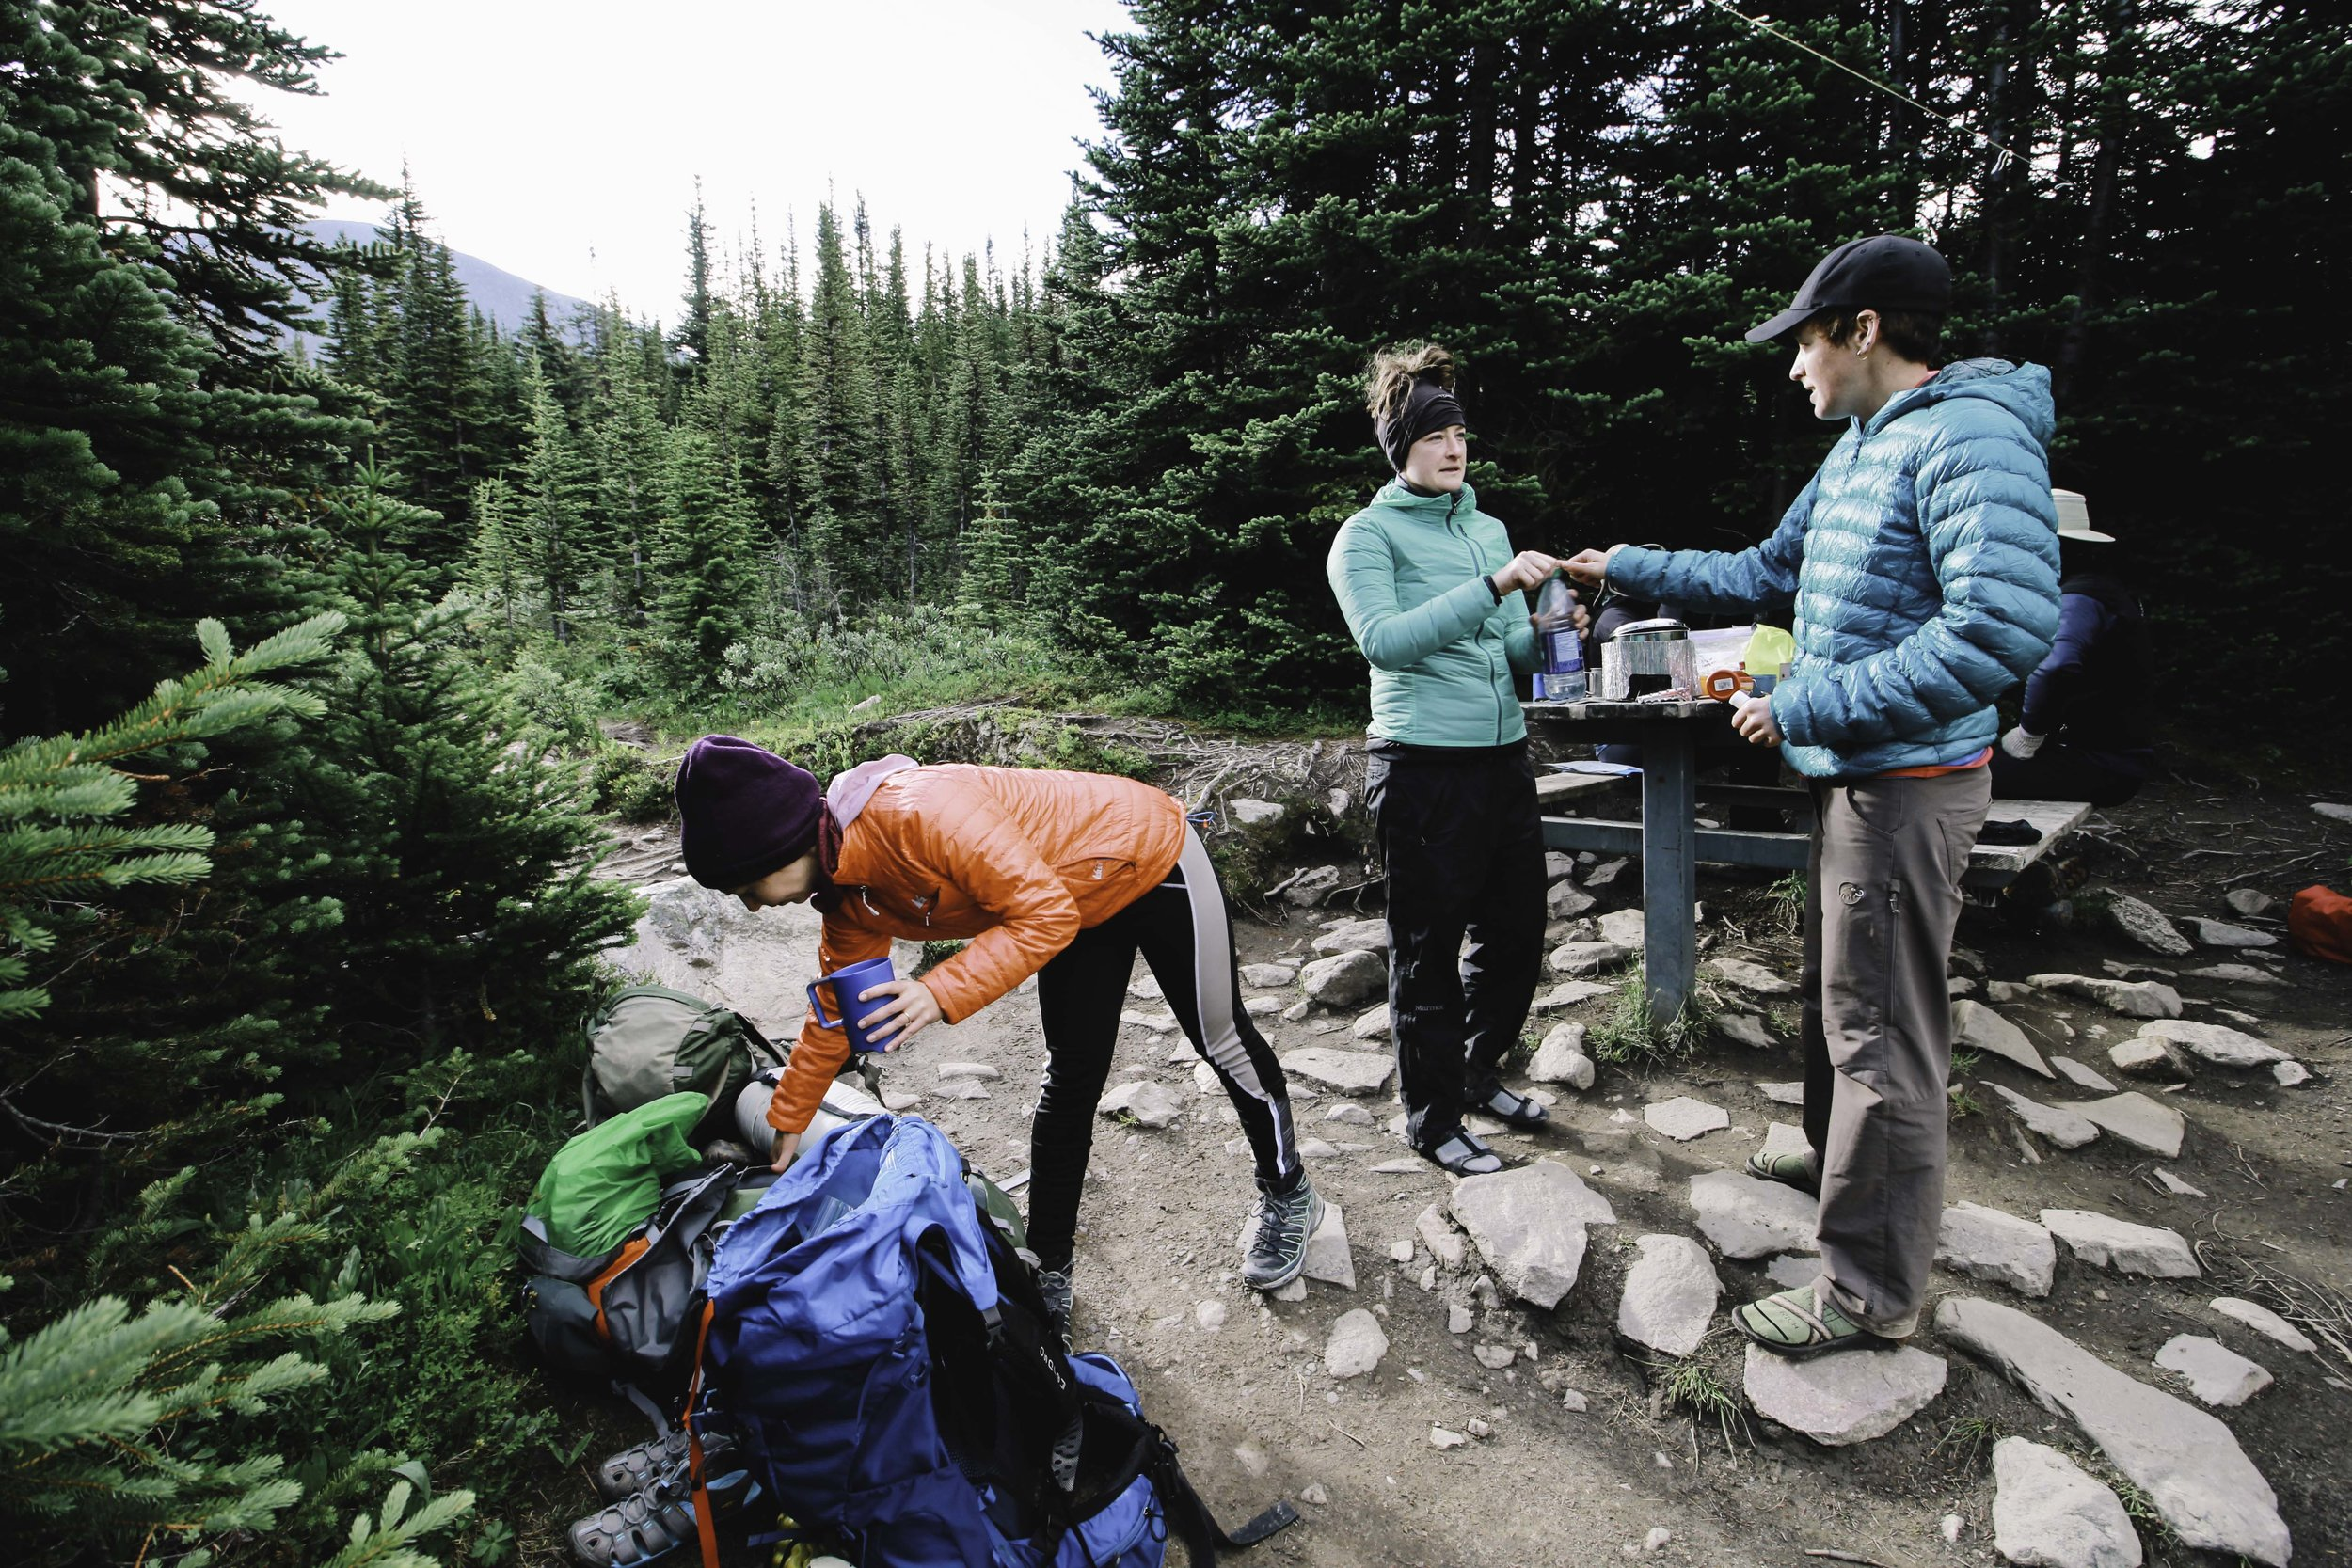 Hiking the Skyline Trail | Beyond Ordinary Guides-105.jpg